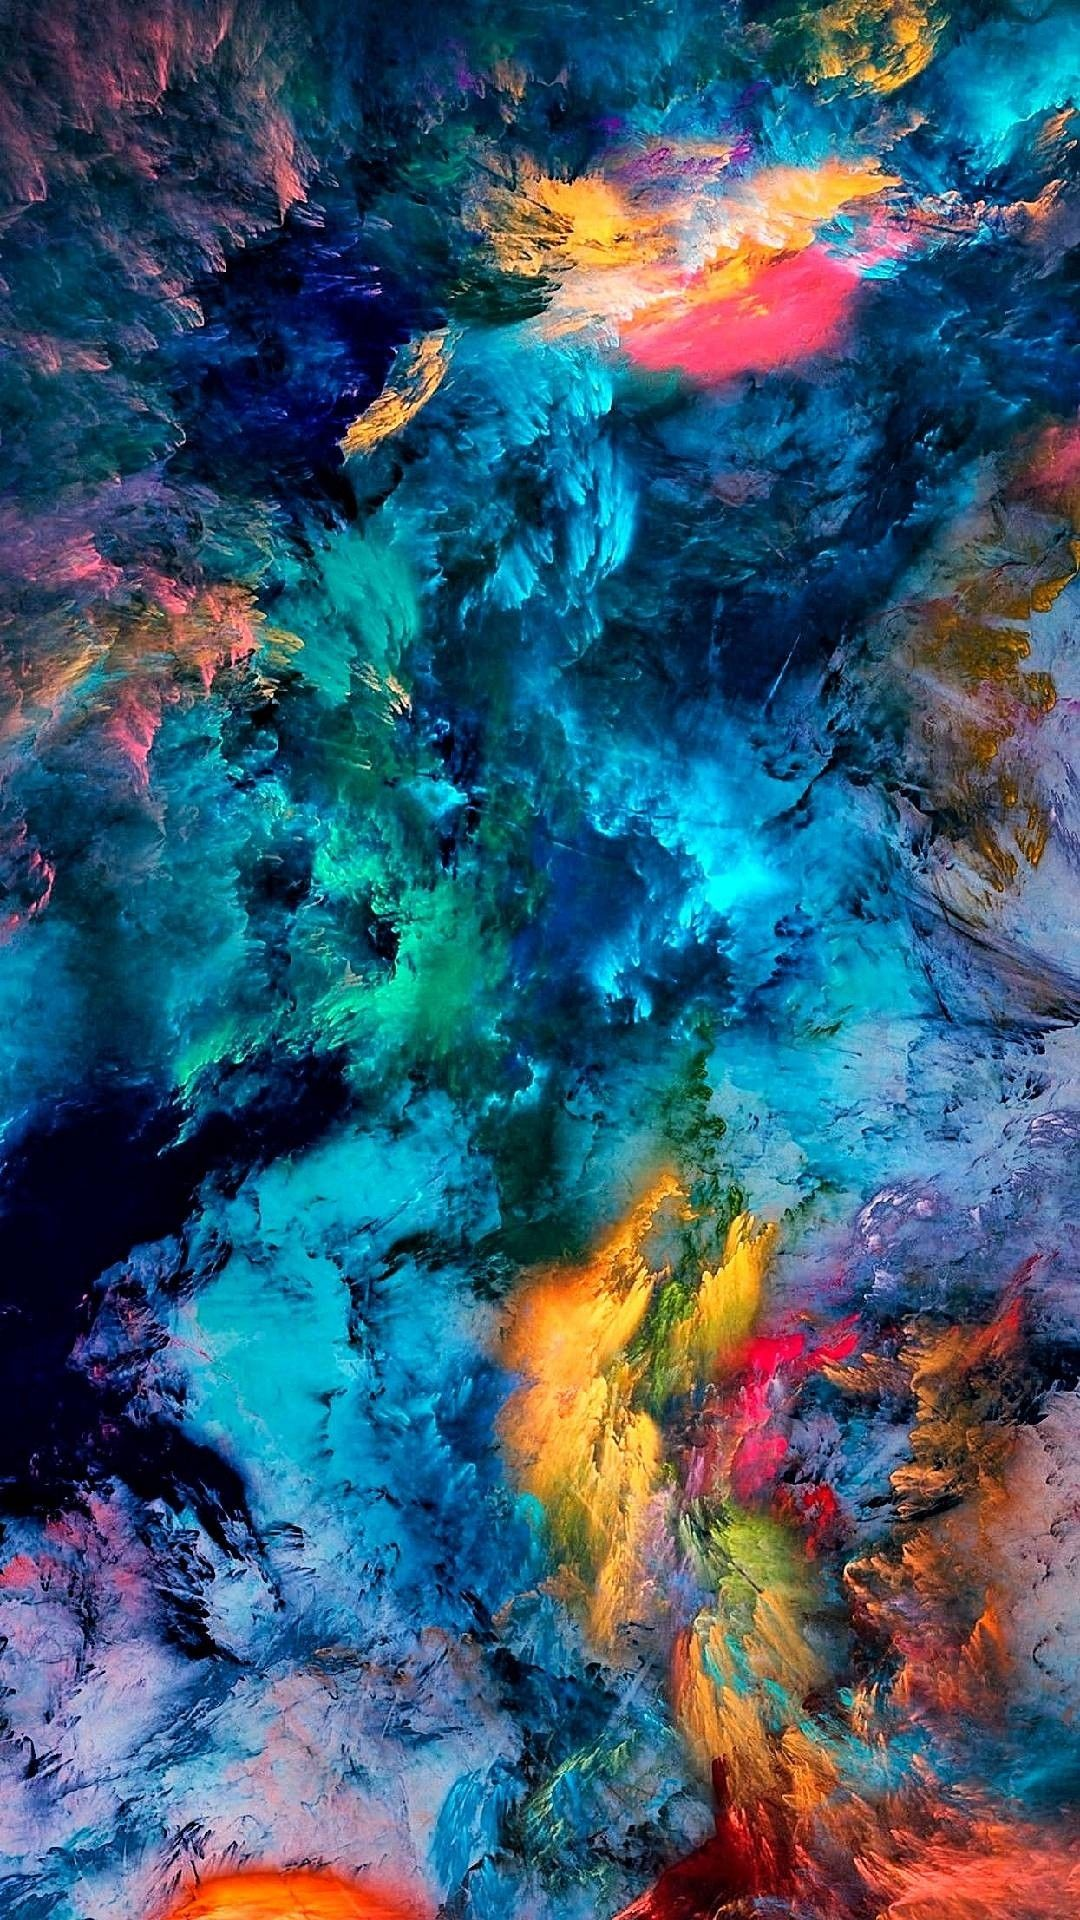 Pin by Din Chow on Sources Storm wallpaper, Abstract